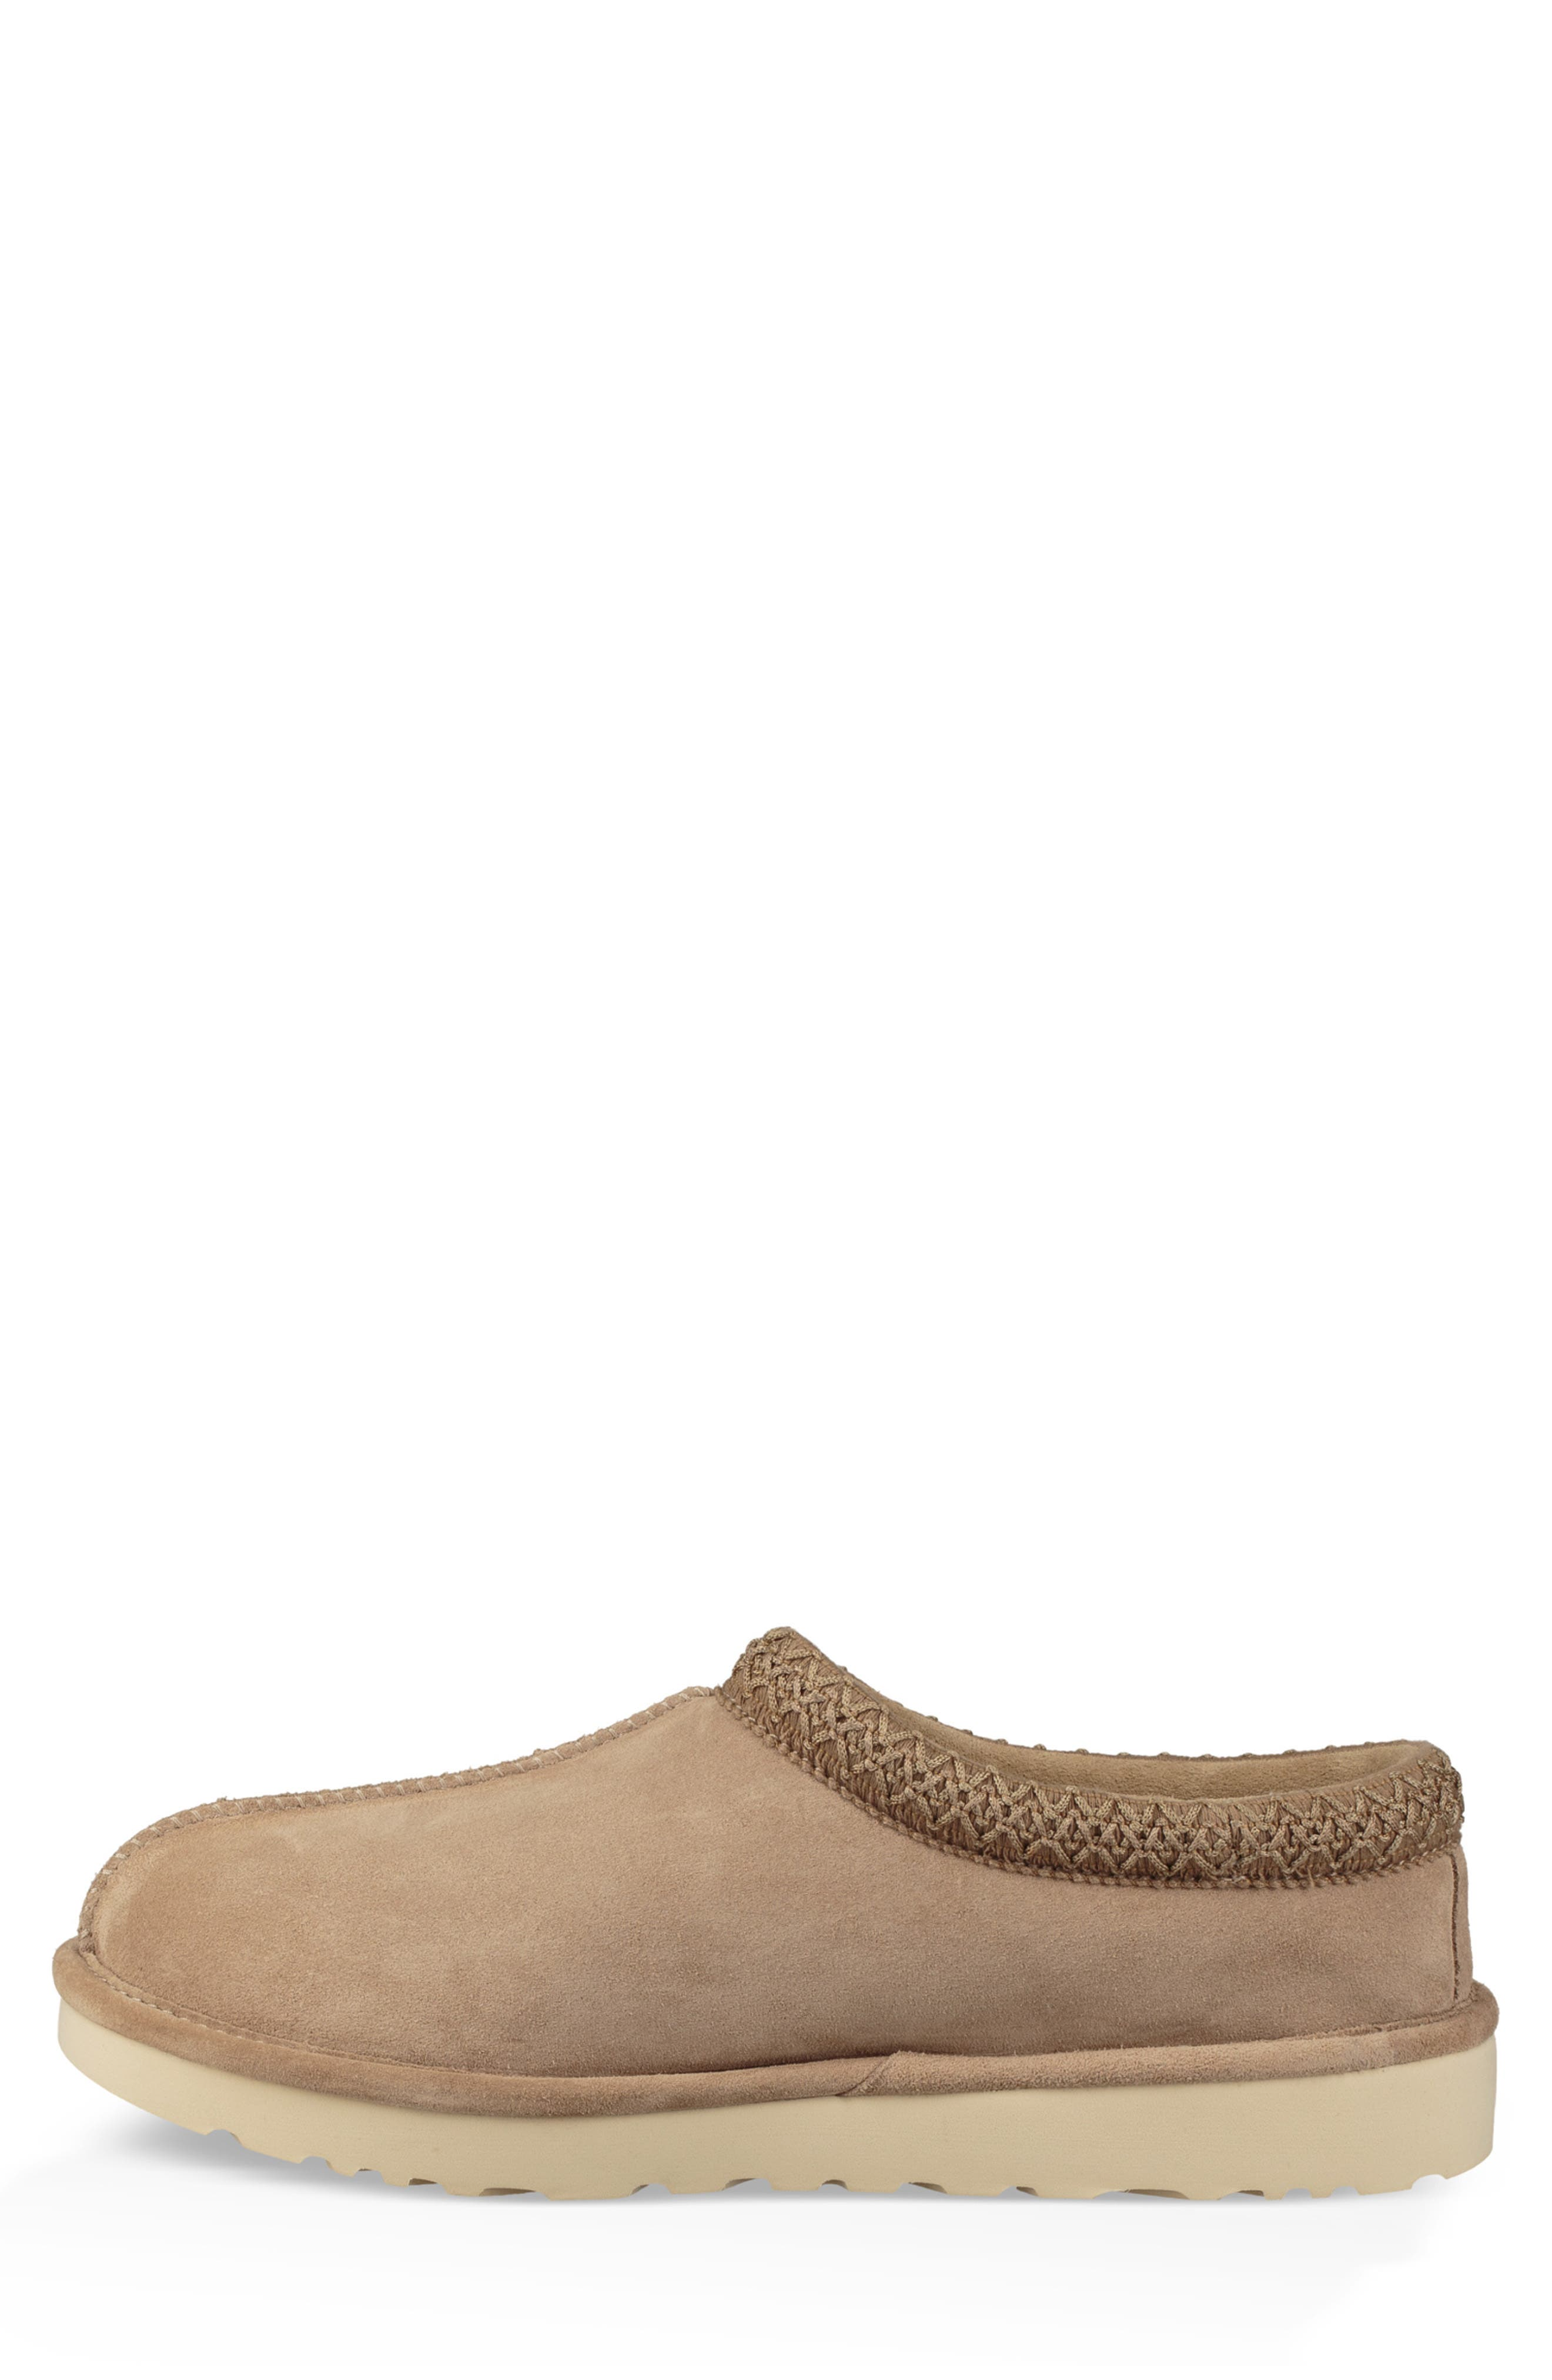 Tasman Pinnacle Indoor/Outdoor Horween Slipper,                             Alternate thumbnail 6, color,                             BEIGE